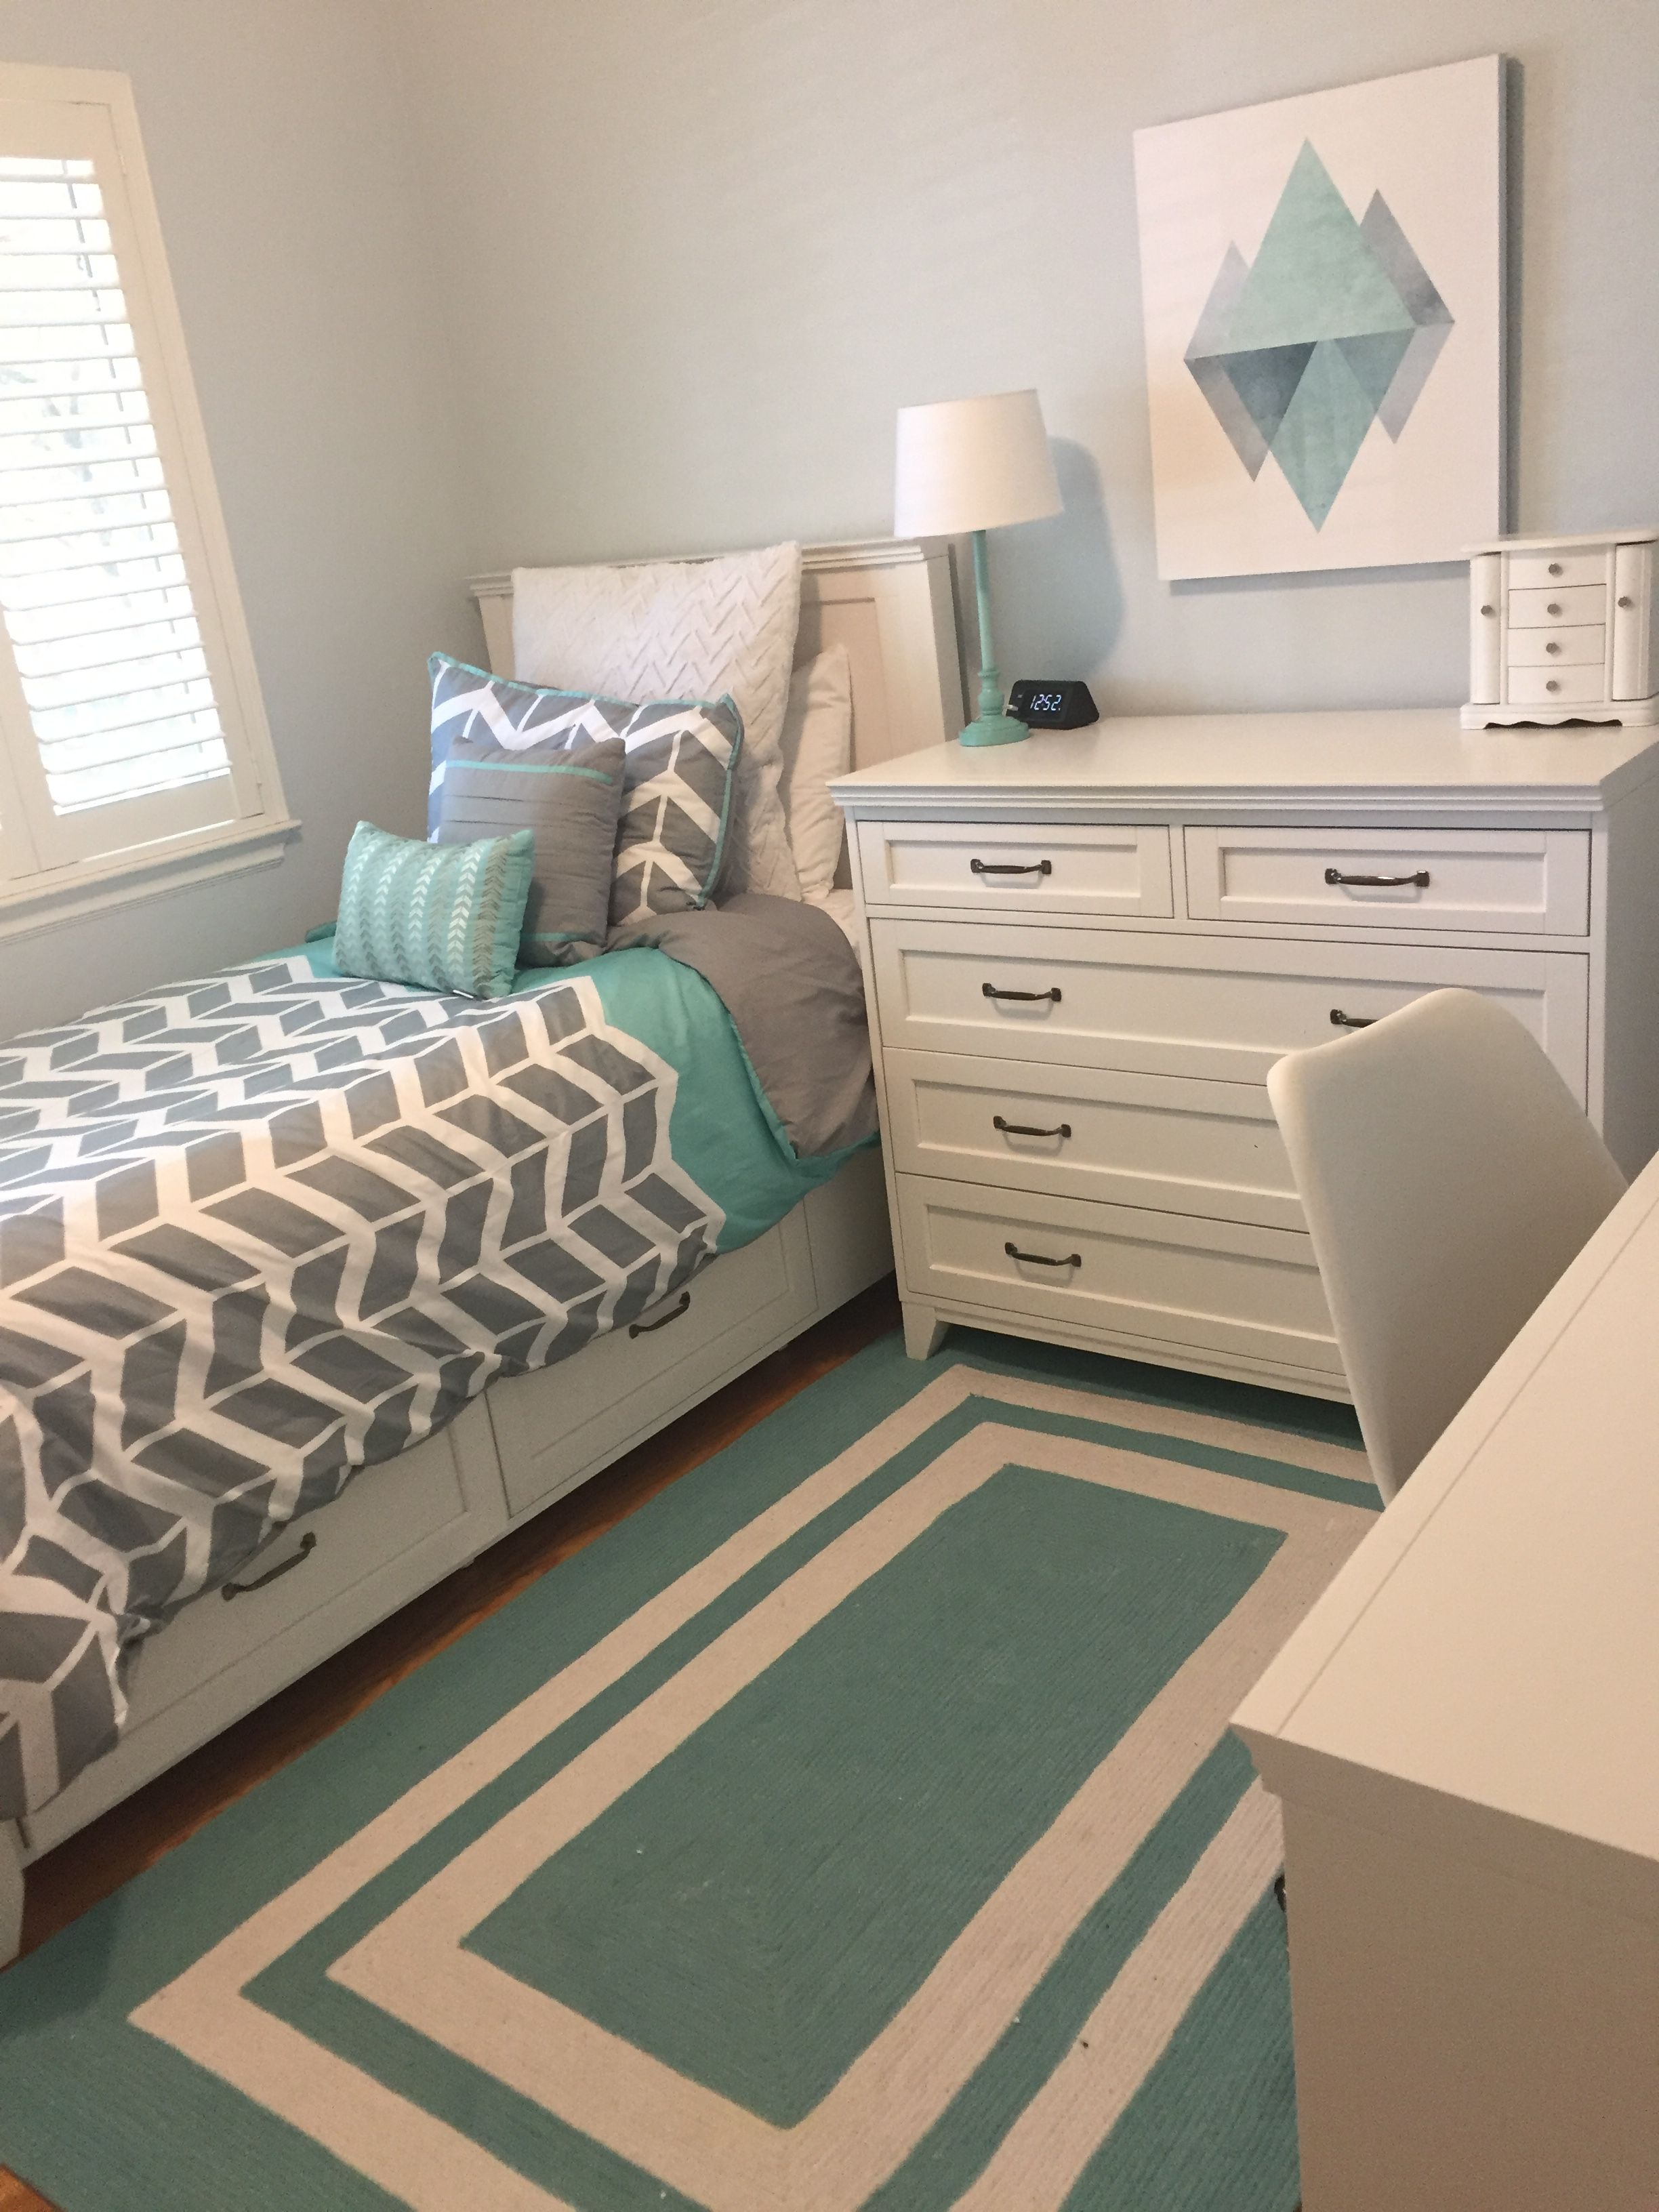 Teenage Room Decor Ideas For Small Rooms My New Bedroom It 39s A Very Small Room But We Made It